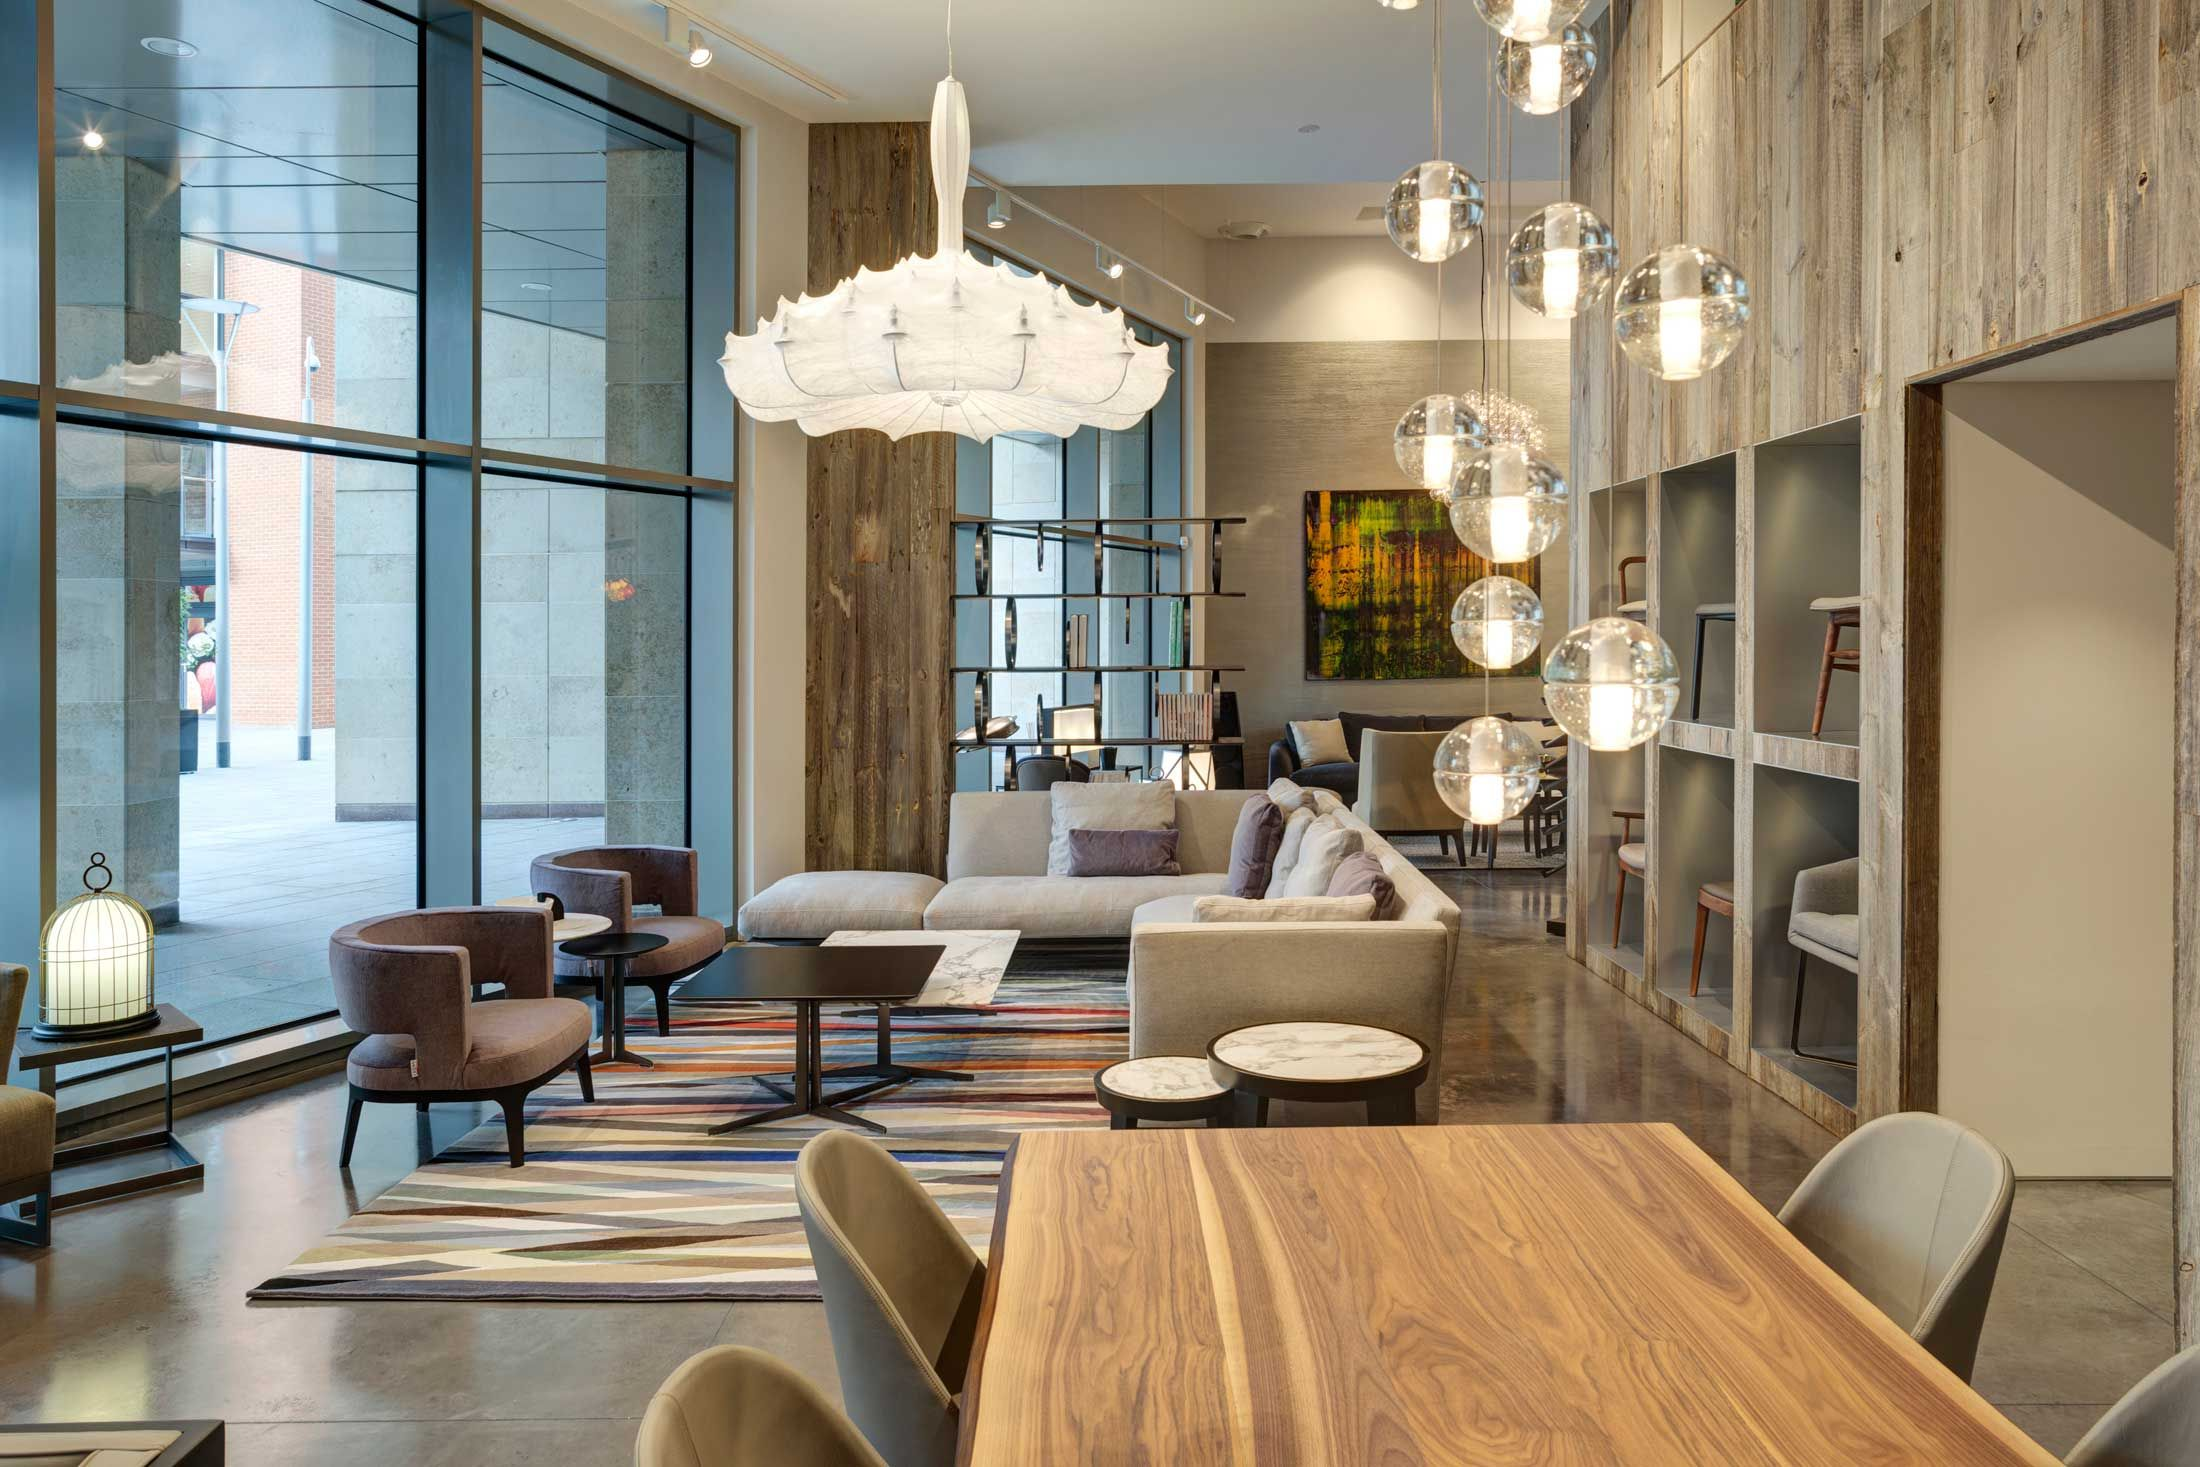 Attractive Staffan Tollgard Design Group Offers An Award Winning Architectural Interior  Design Service For Discerning Clients And Has Become Internationally Known  For ...